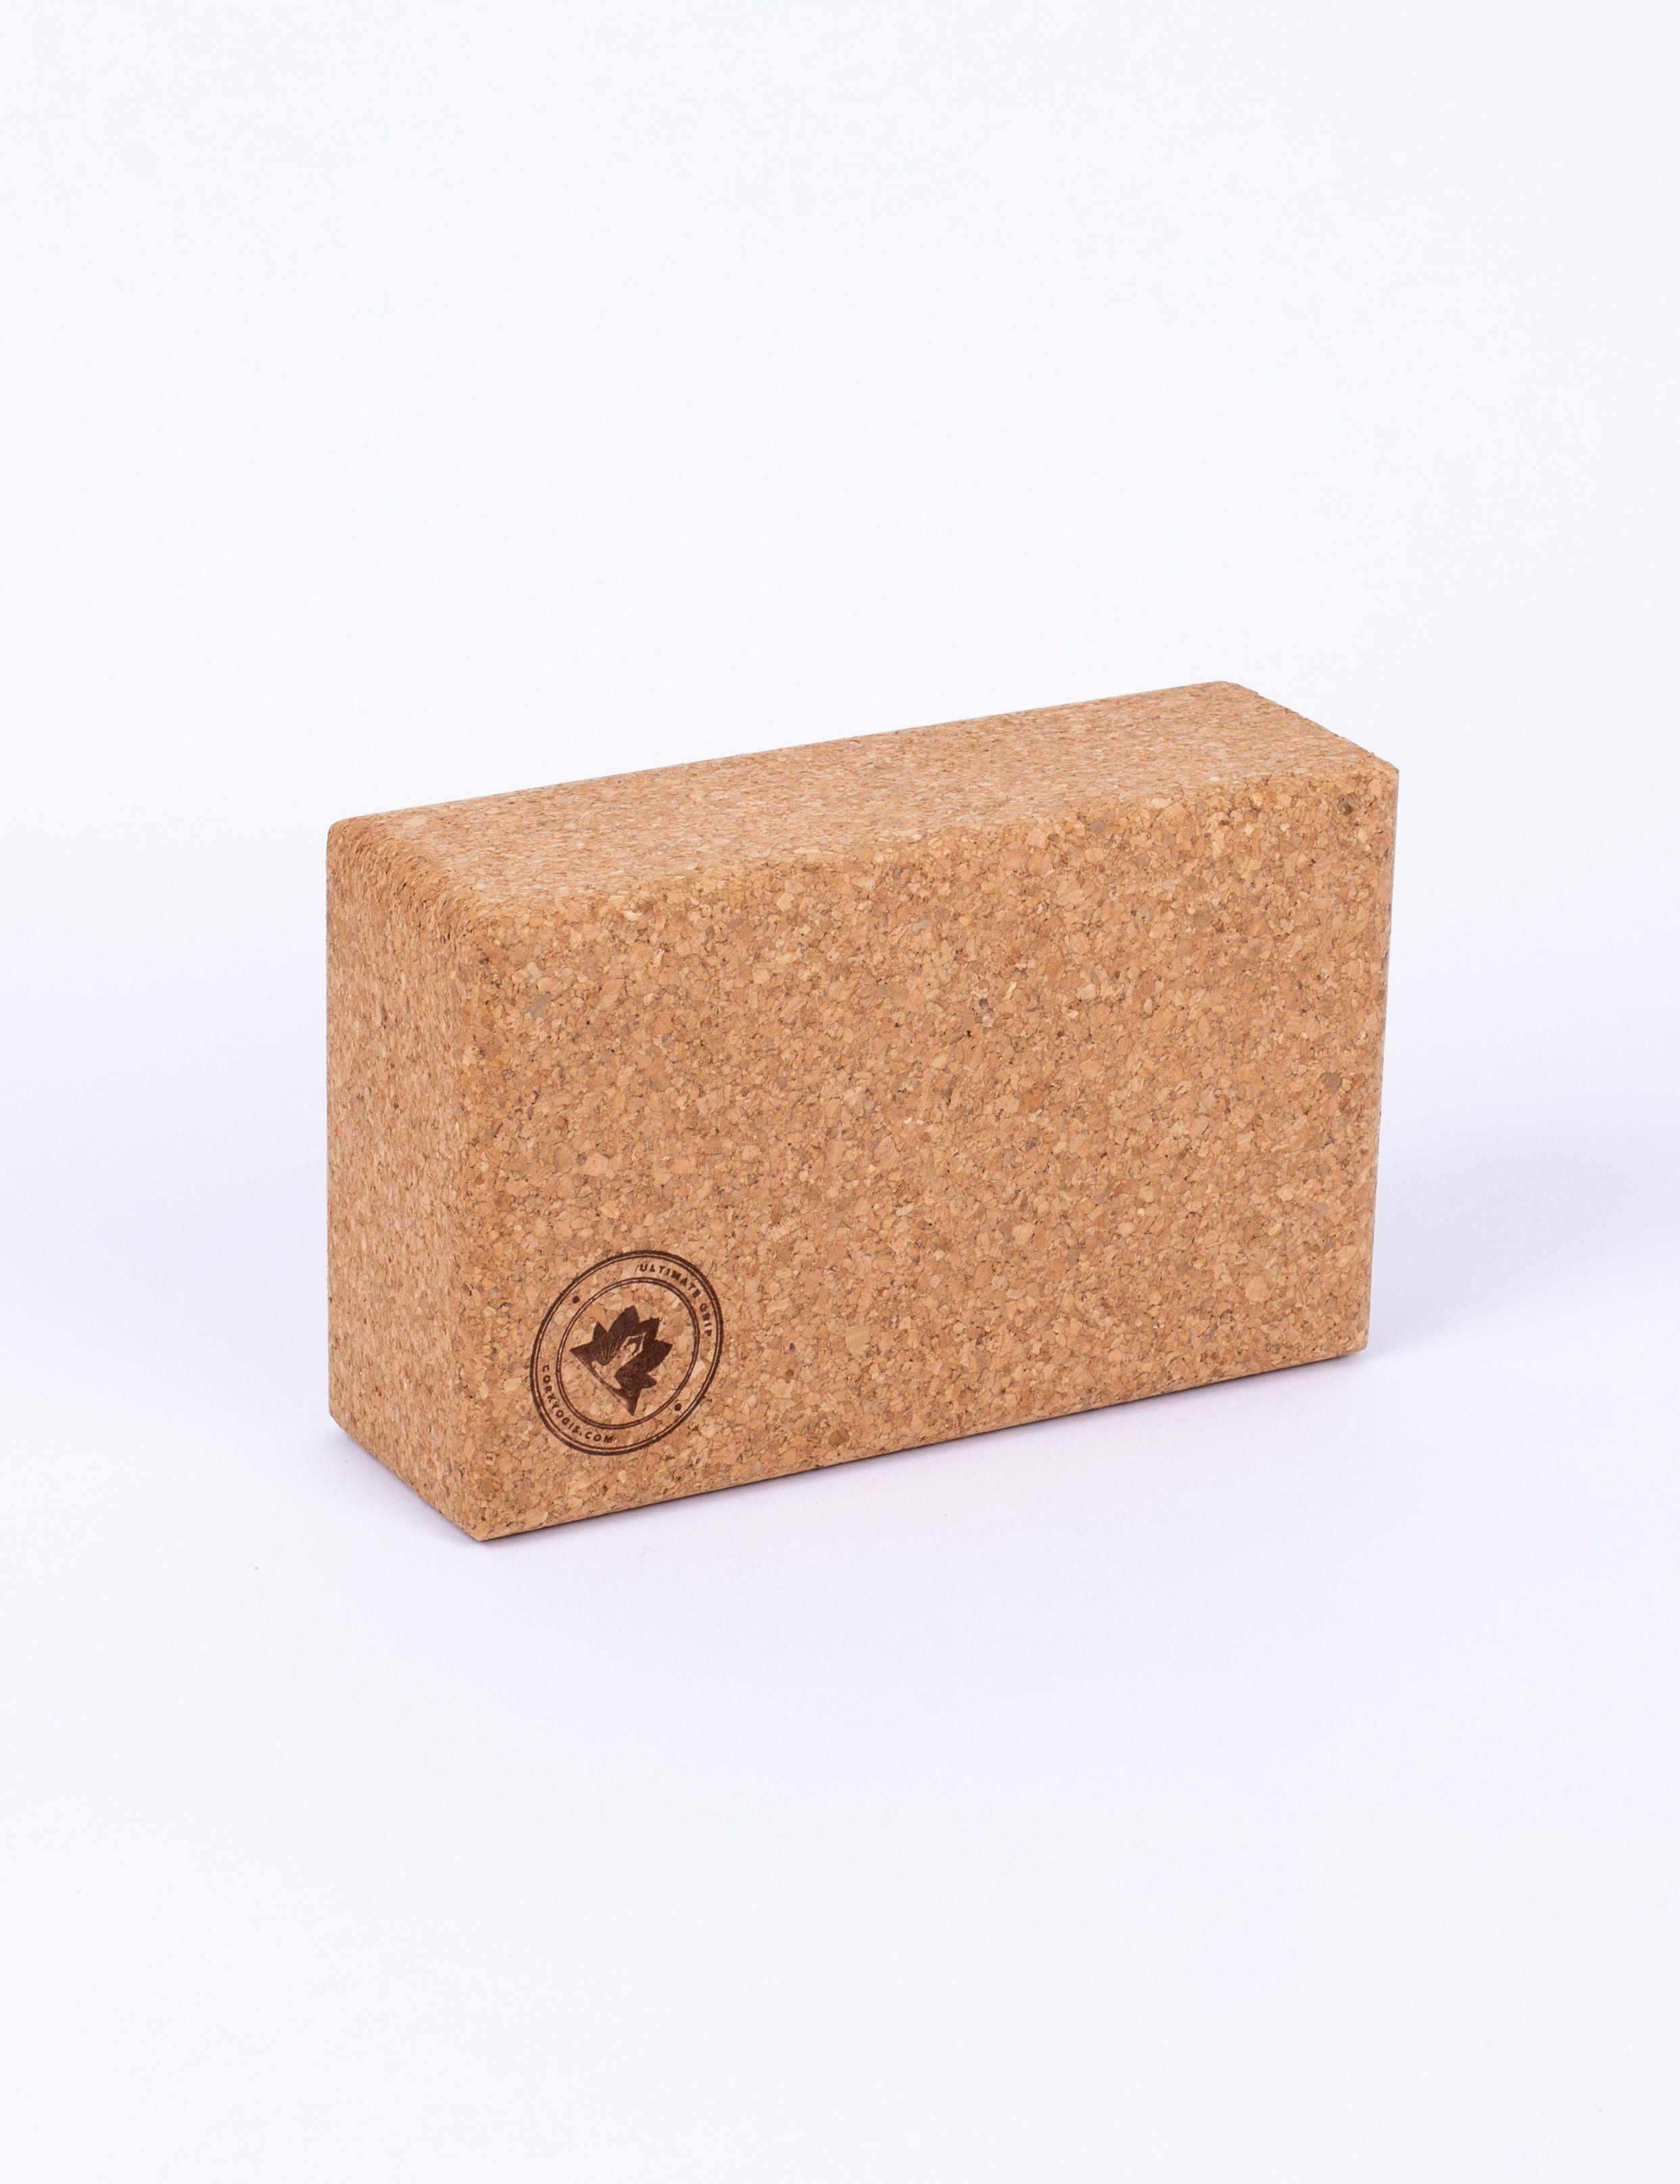 Cork yoga bricks uk